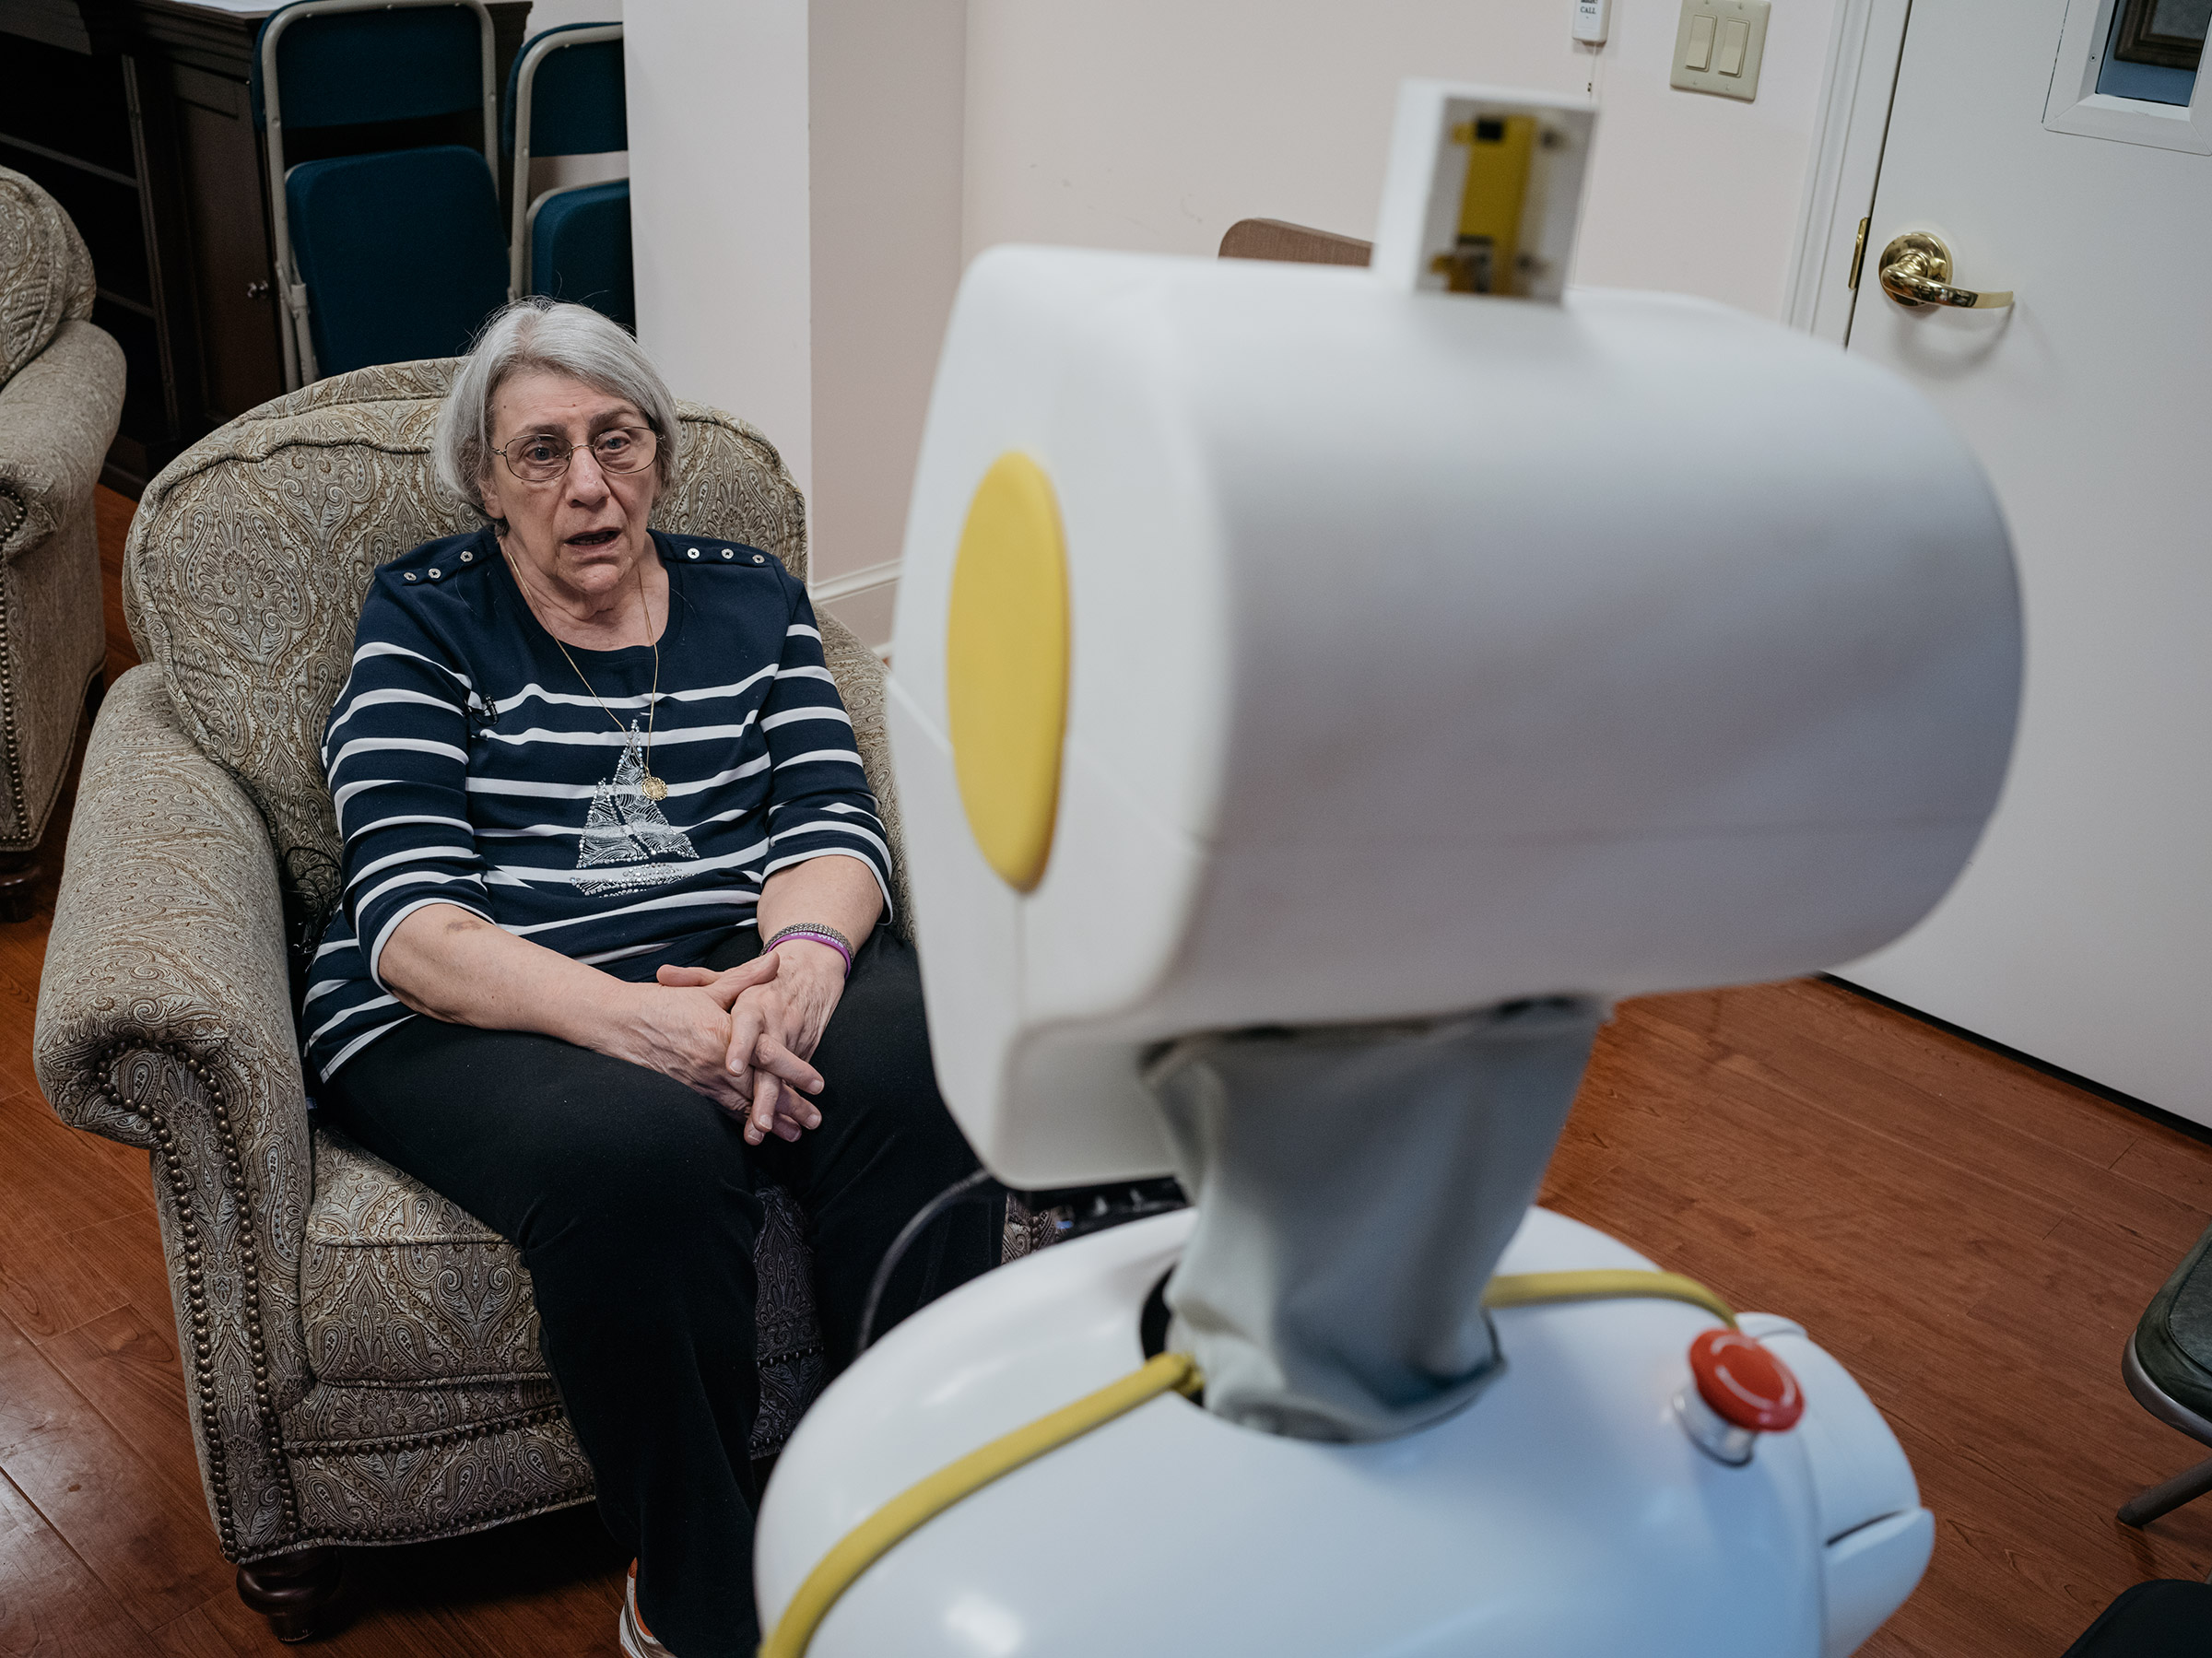 Stevie talks with Betty Bernard while researchers monitor the converstaion at Knollwood Military Retirement Community in Washington, D.C.